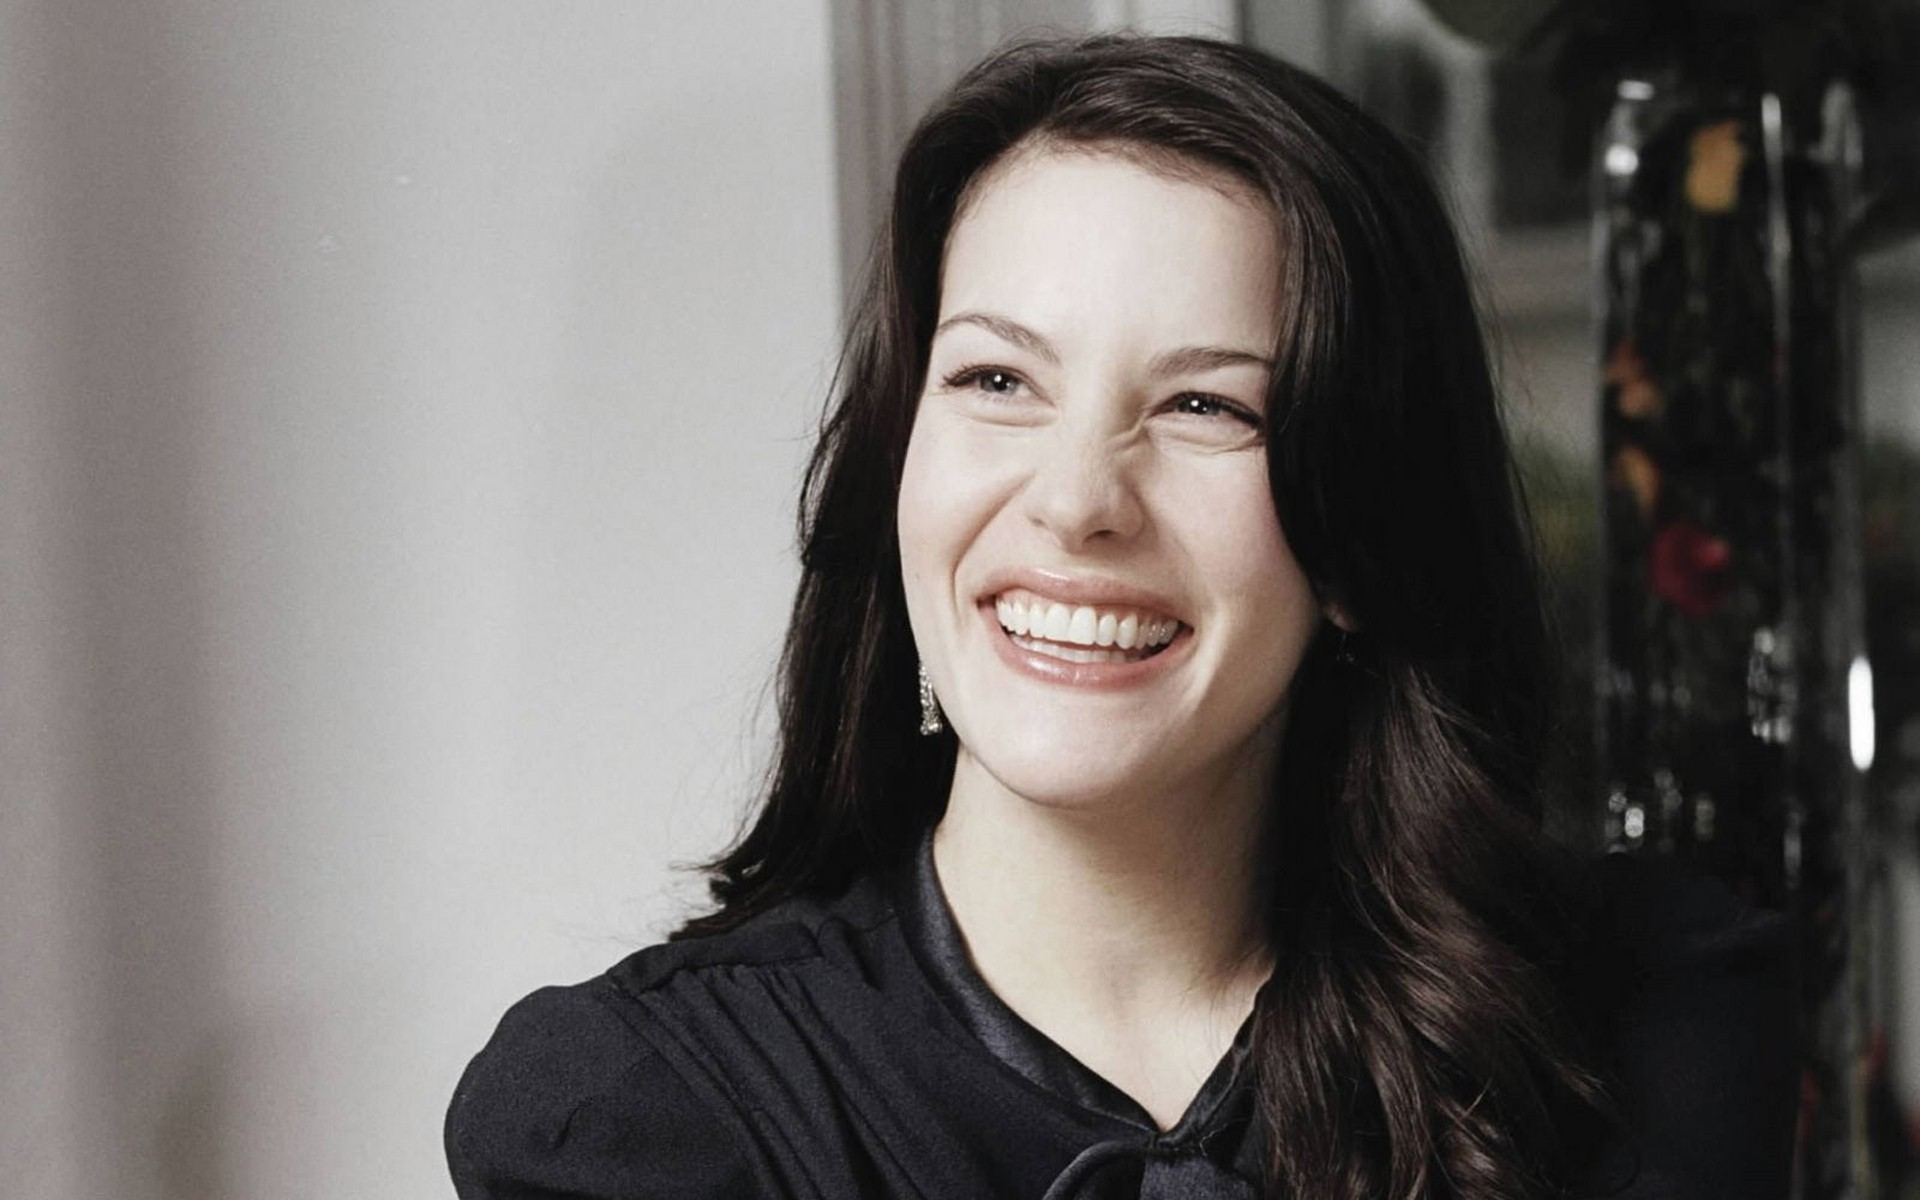 cute liv tyler wallpaper 37017